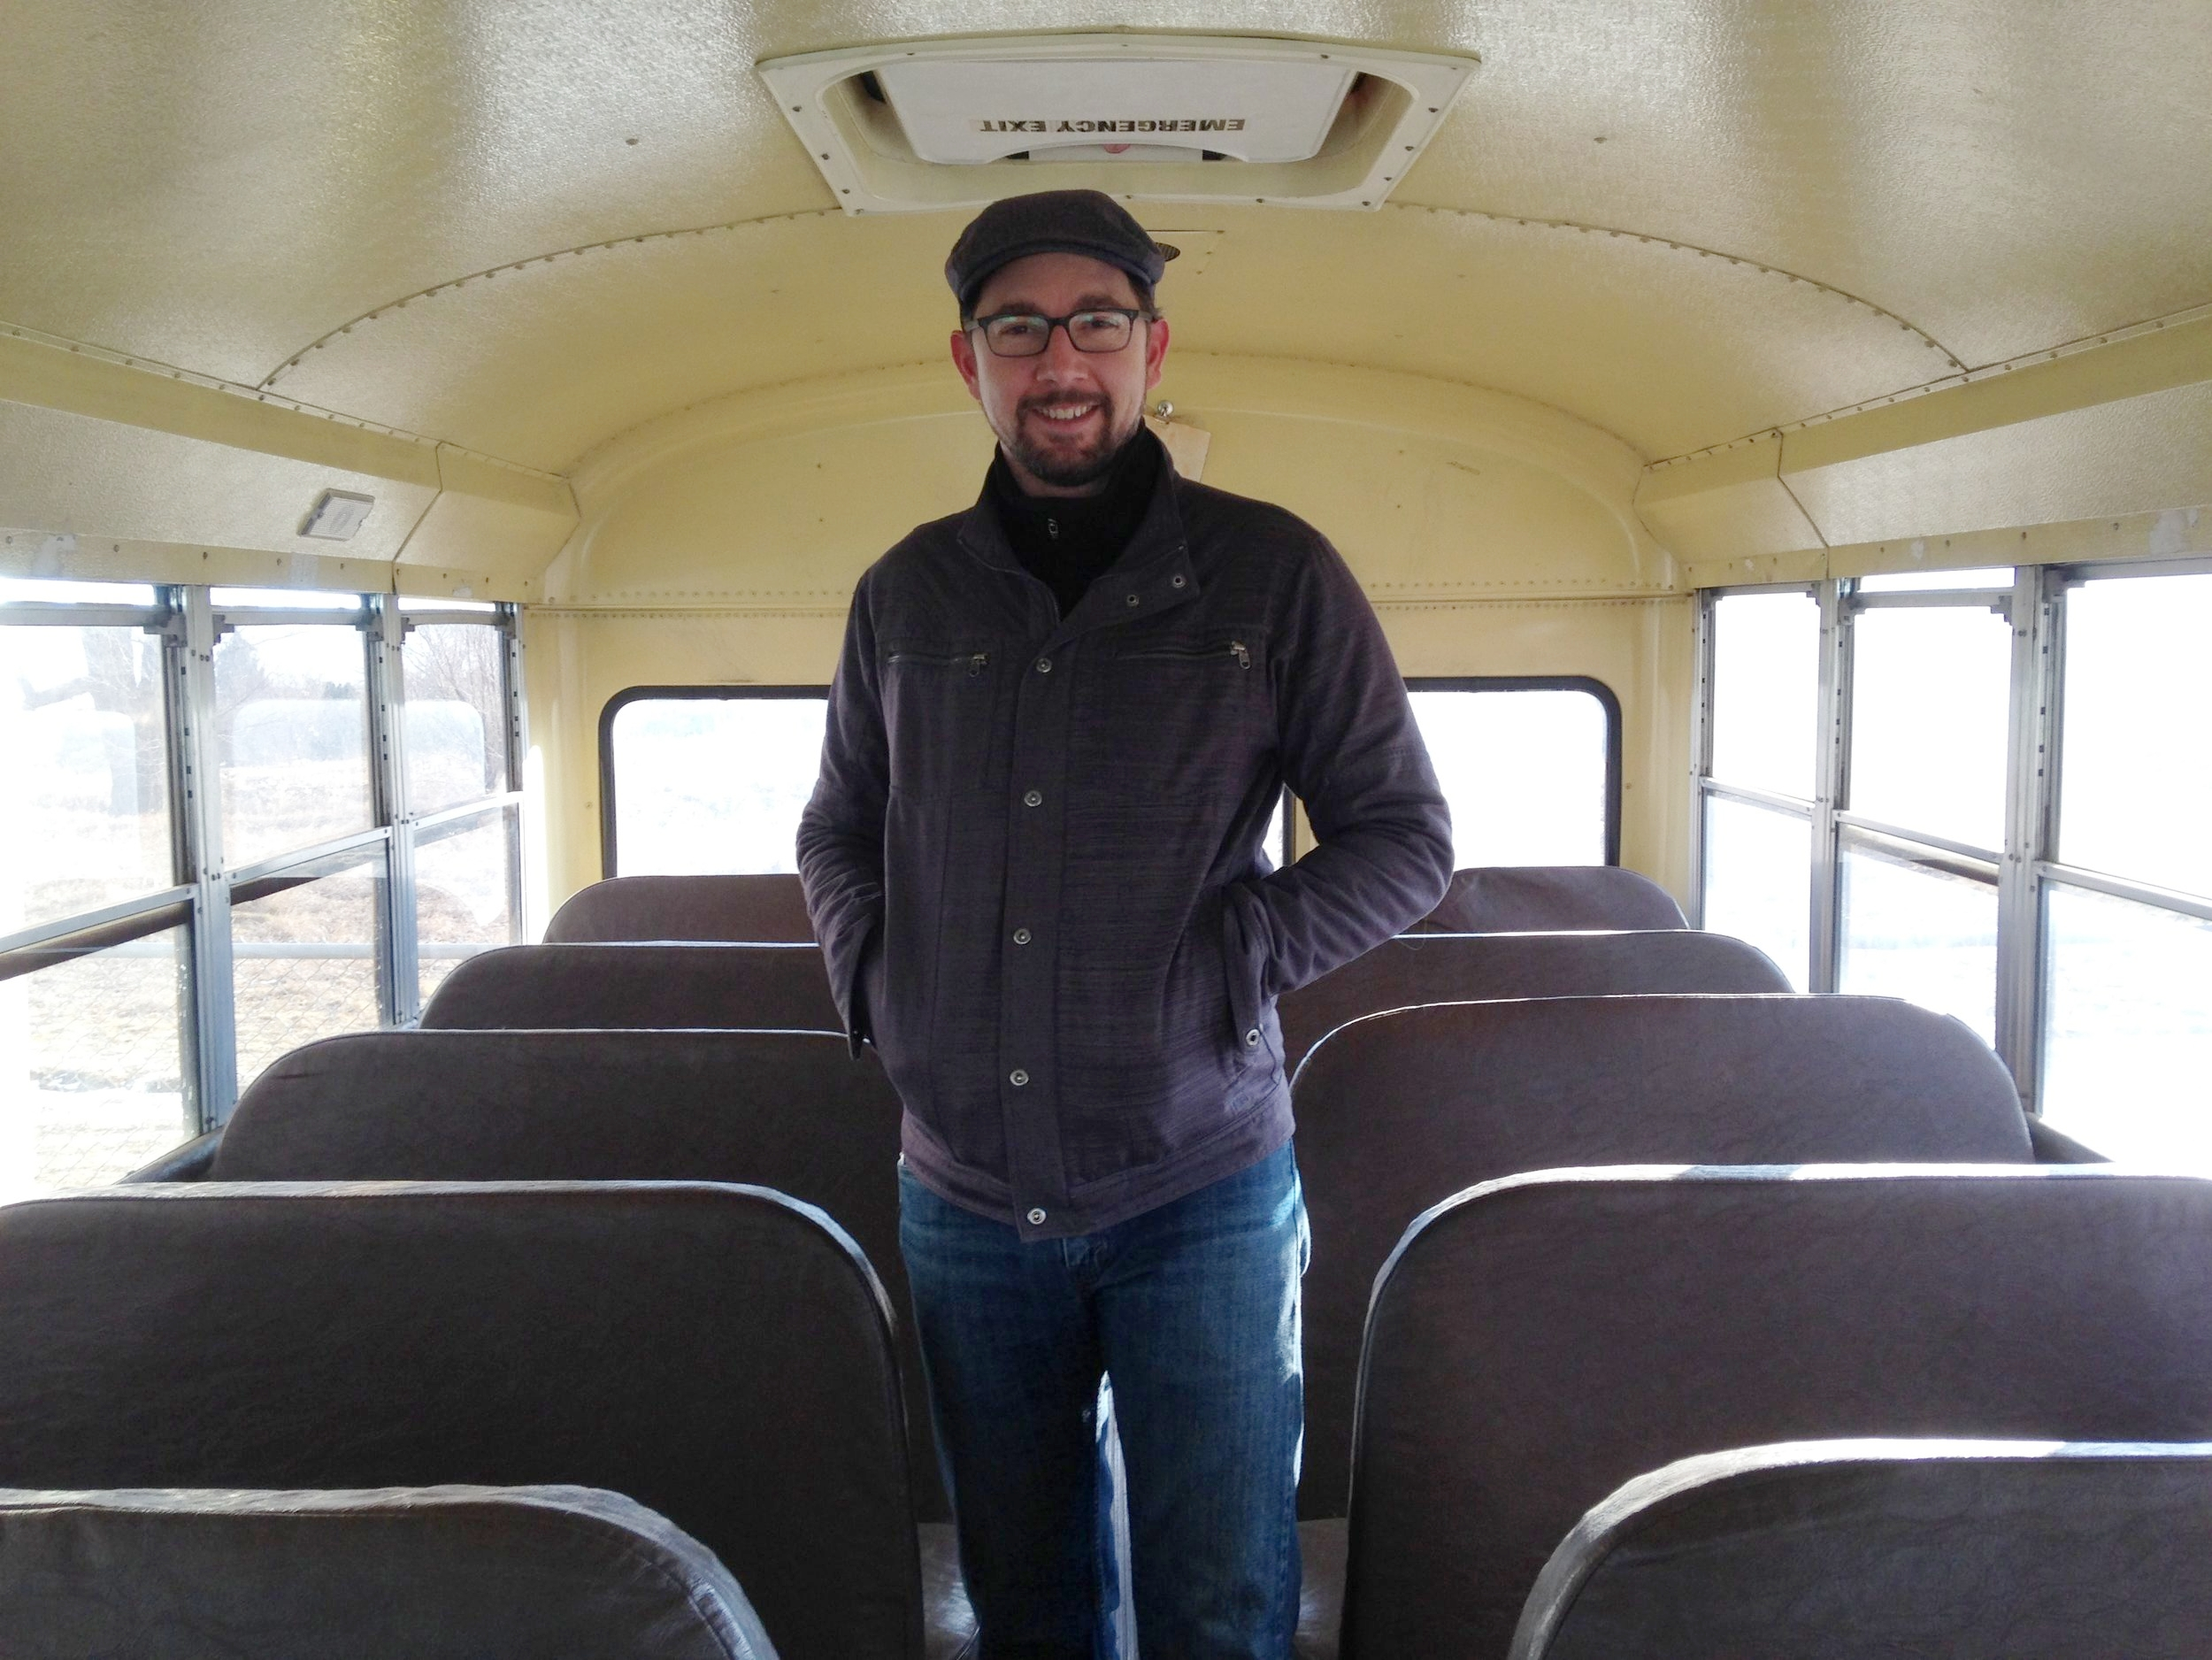 Aaron Winston, Pottery Lab Director, checks out the bus